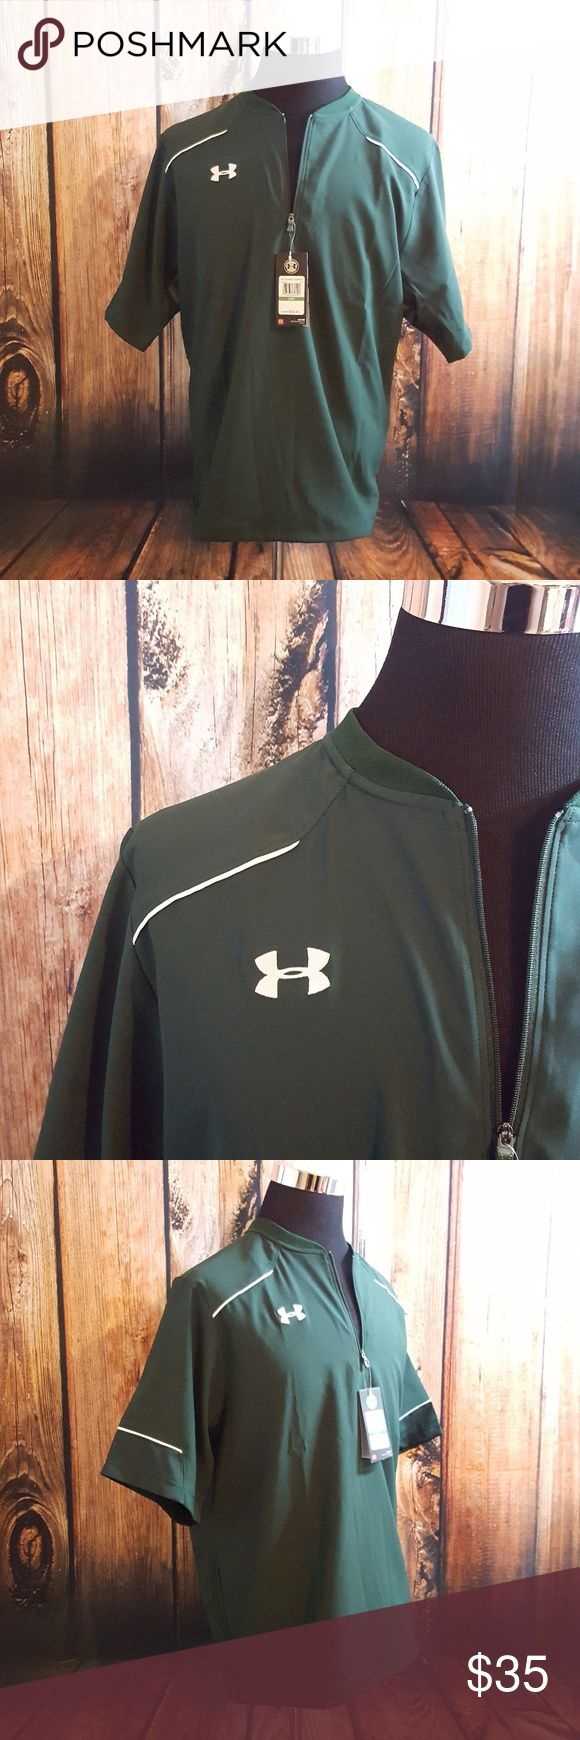 ♂ NWT UNDER ARMOUR mens half zip cage jacket Under Armour Mens Team Ultimate Short Sleeve Cage Jacket Lightweight   SIZE SMALL AND LARGE AVAILABLE  FEATURES: - Authentic, brand new with tags, never worn  - Short sleeve, half zip baseball batting cage jacket - Stretch woven fabrication  - Perforated graphite underarm panels for maximum breathability and ventilation - Bungee cord at bottom hem with side seam zipper vent Under Armour Jackets & Coats Performance Jackets